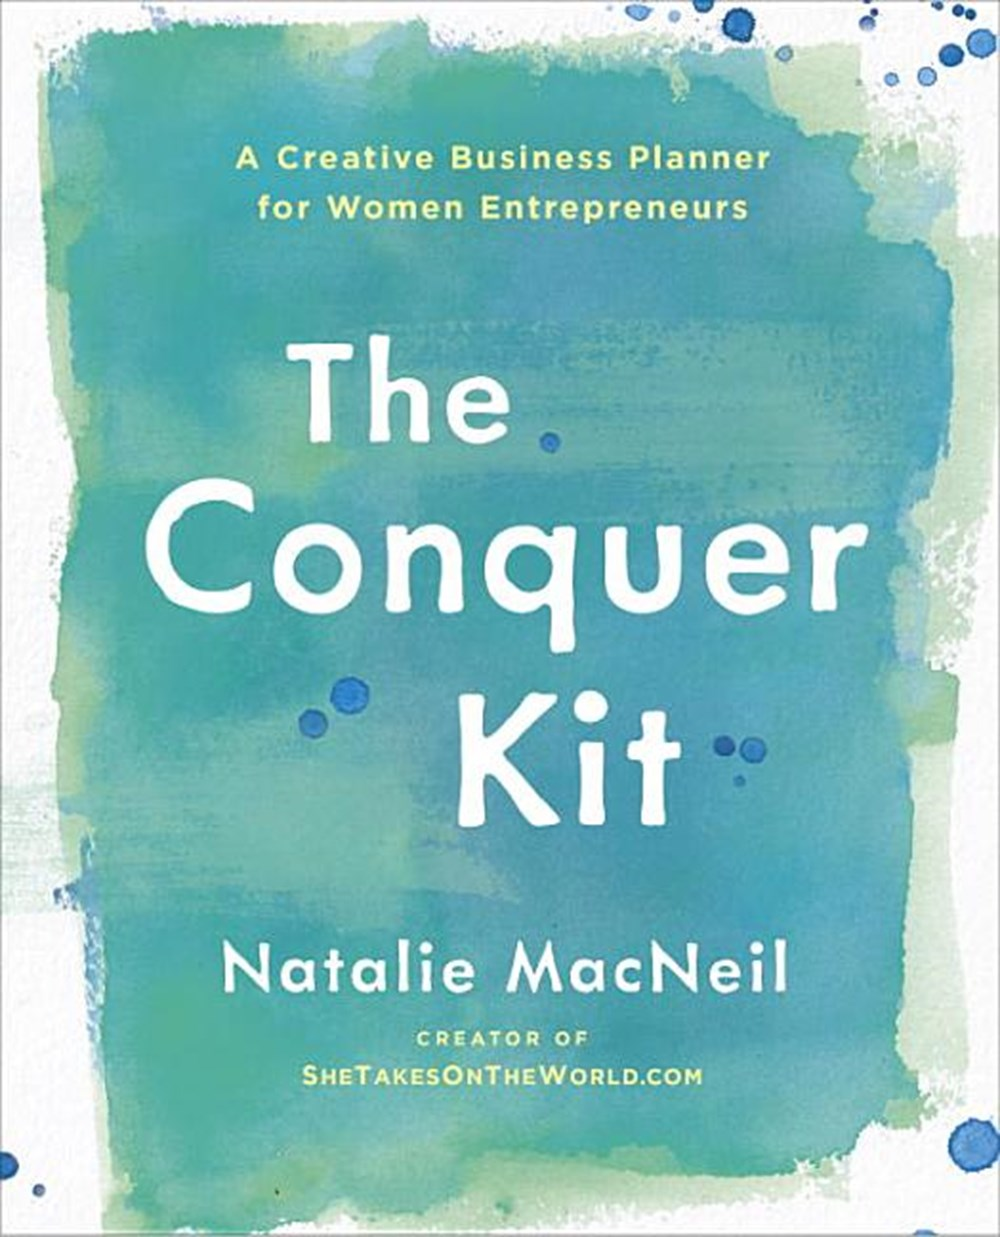 Conquer Kit: A Creative Business Planner for Women Entrepreneurs